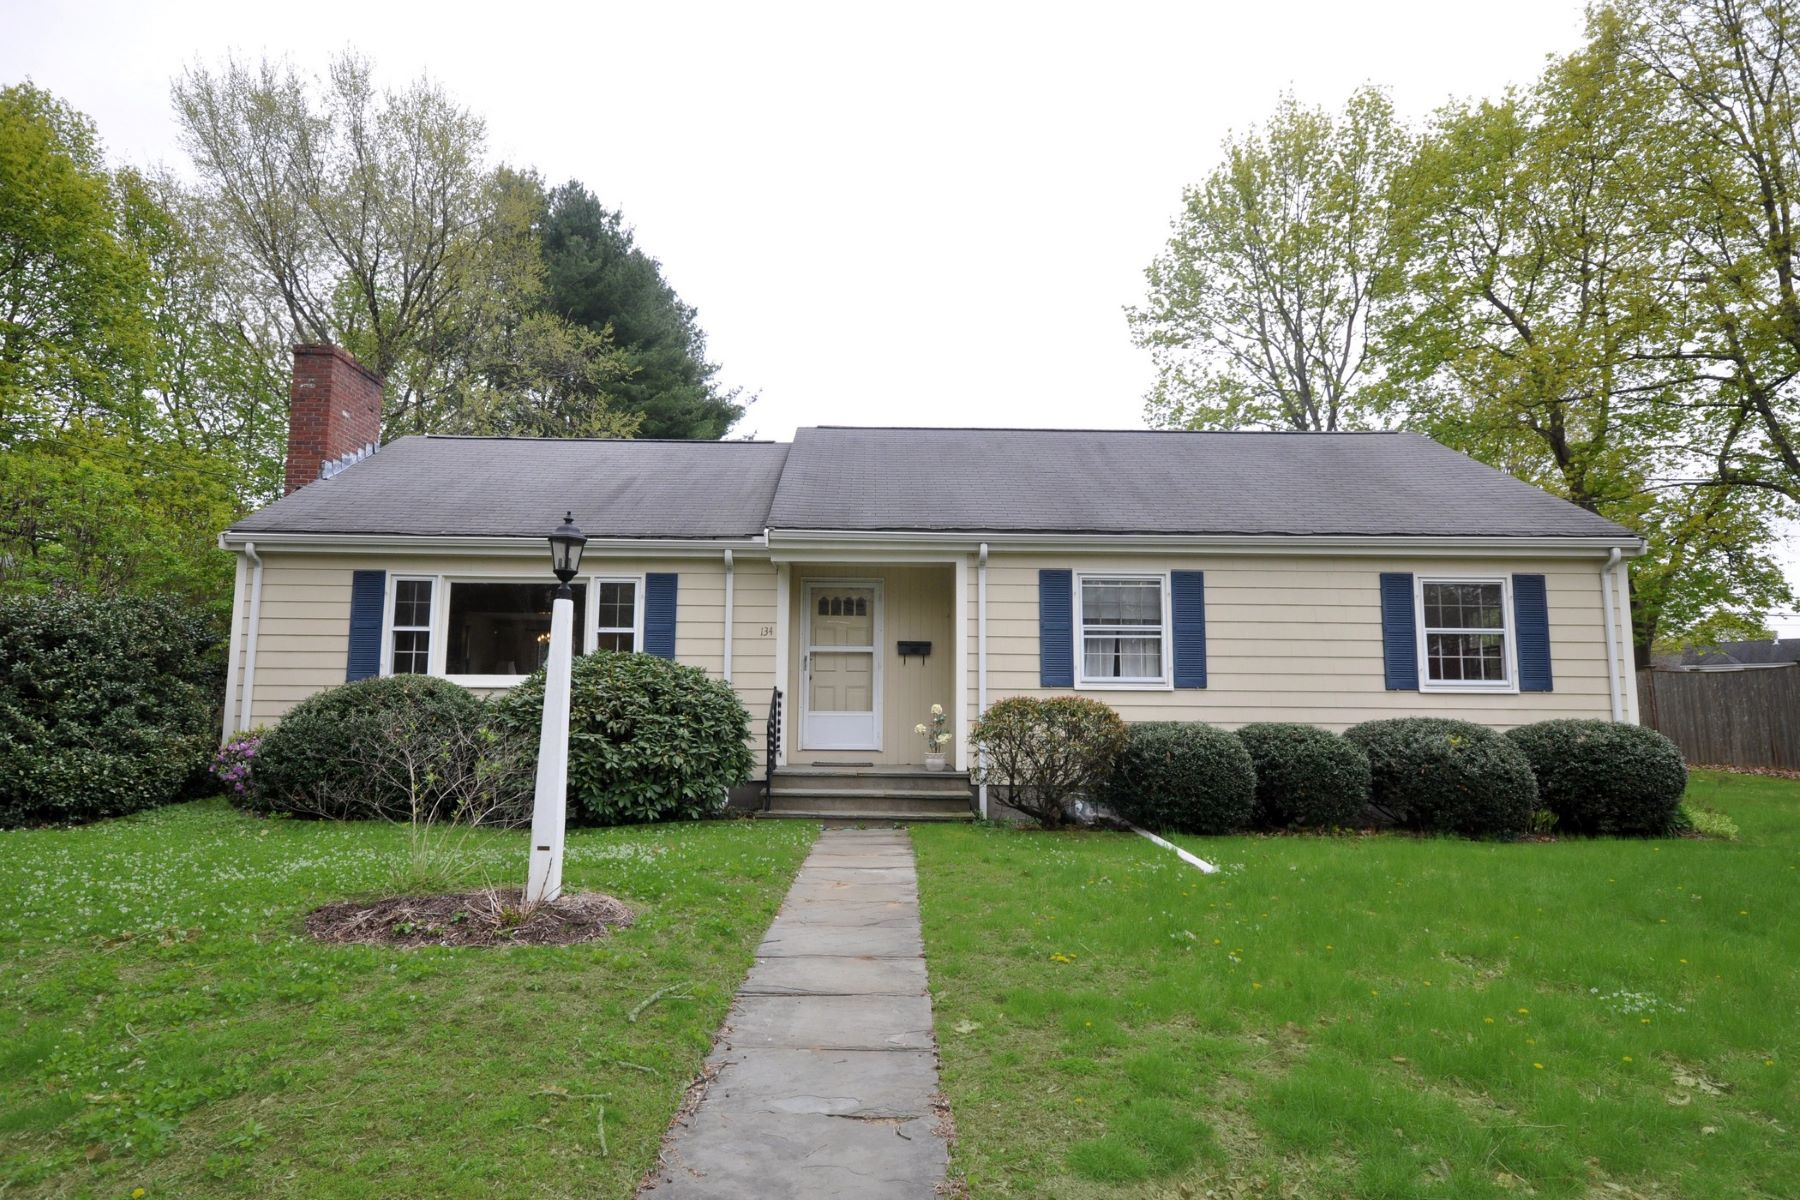 Single Family Home for Active at 134 Taylor Street, Needham 134 Taylor St Needham, Massachusetts 02492 United States